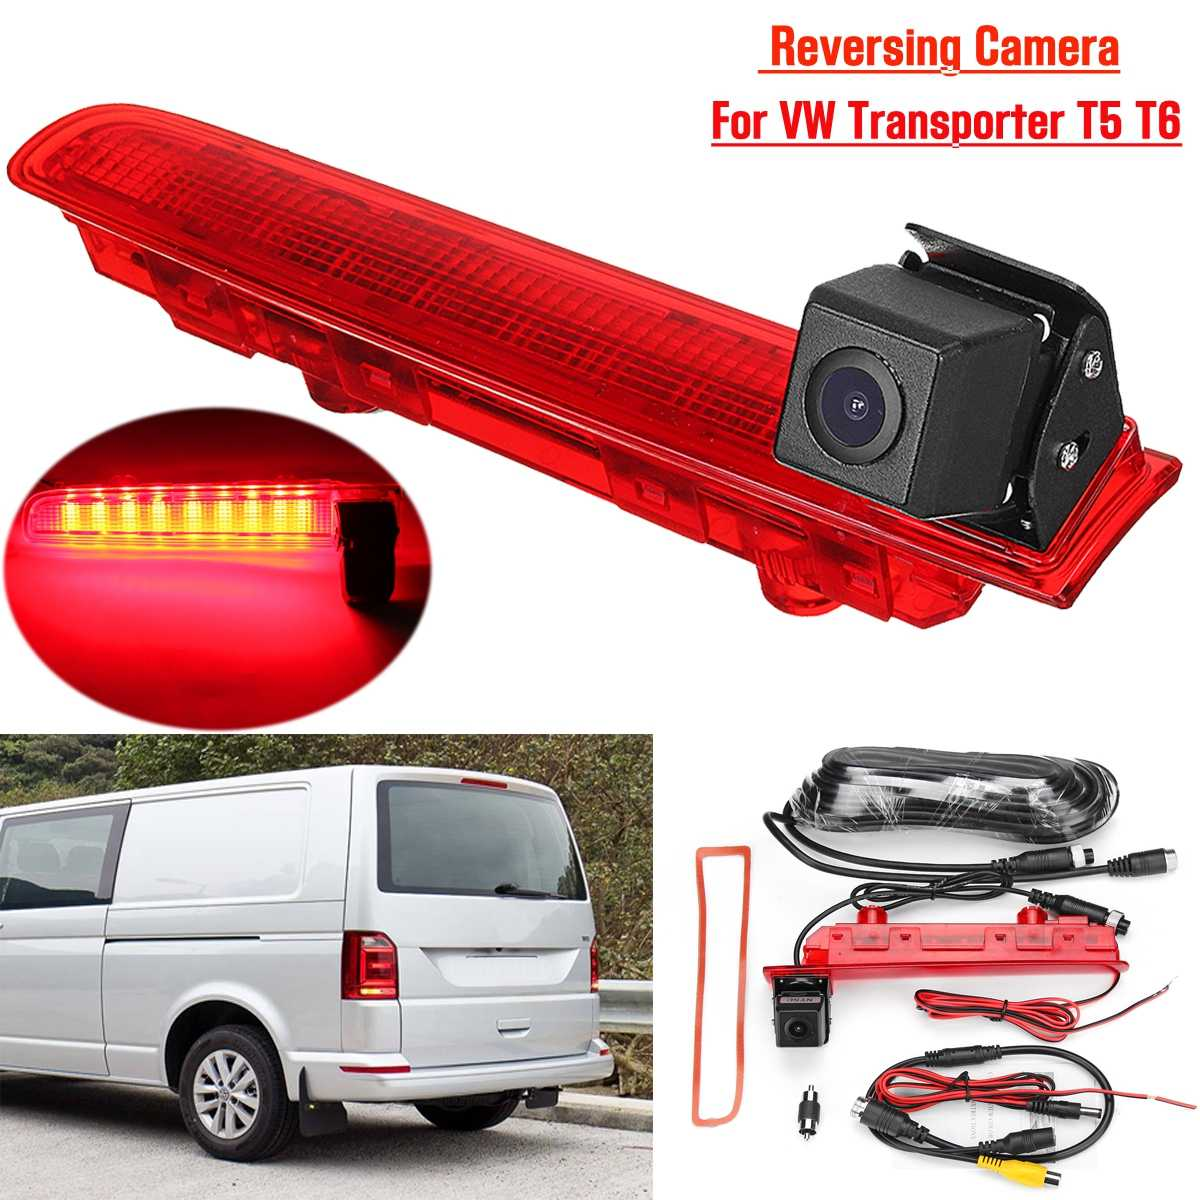 170 Degree Car Reversing Backup Rear View Camera w/Brake Light For VW Transporter T5 & T6 2010 - Onwards170 Degree Car Reversing Backup Rear View Camera w/Brake Light For VW Transporter T5 & T6 2010 - Onwards